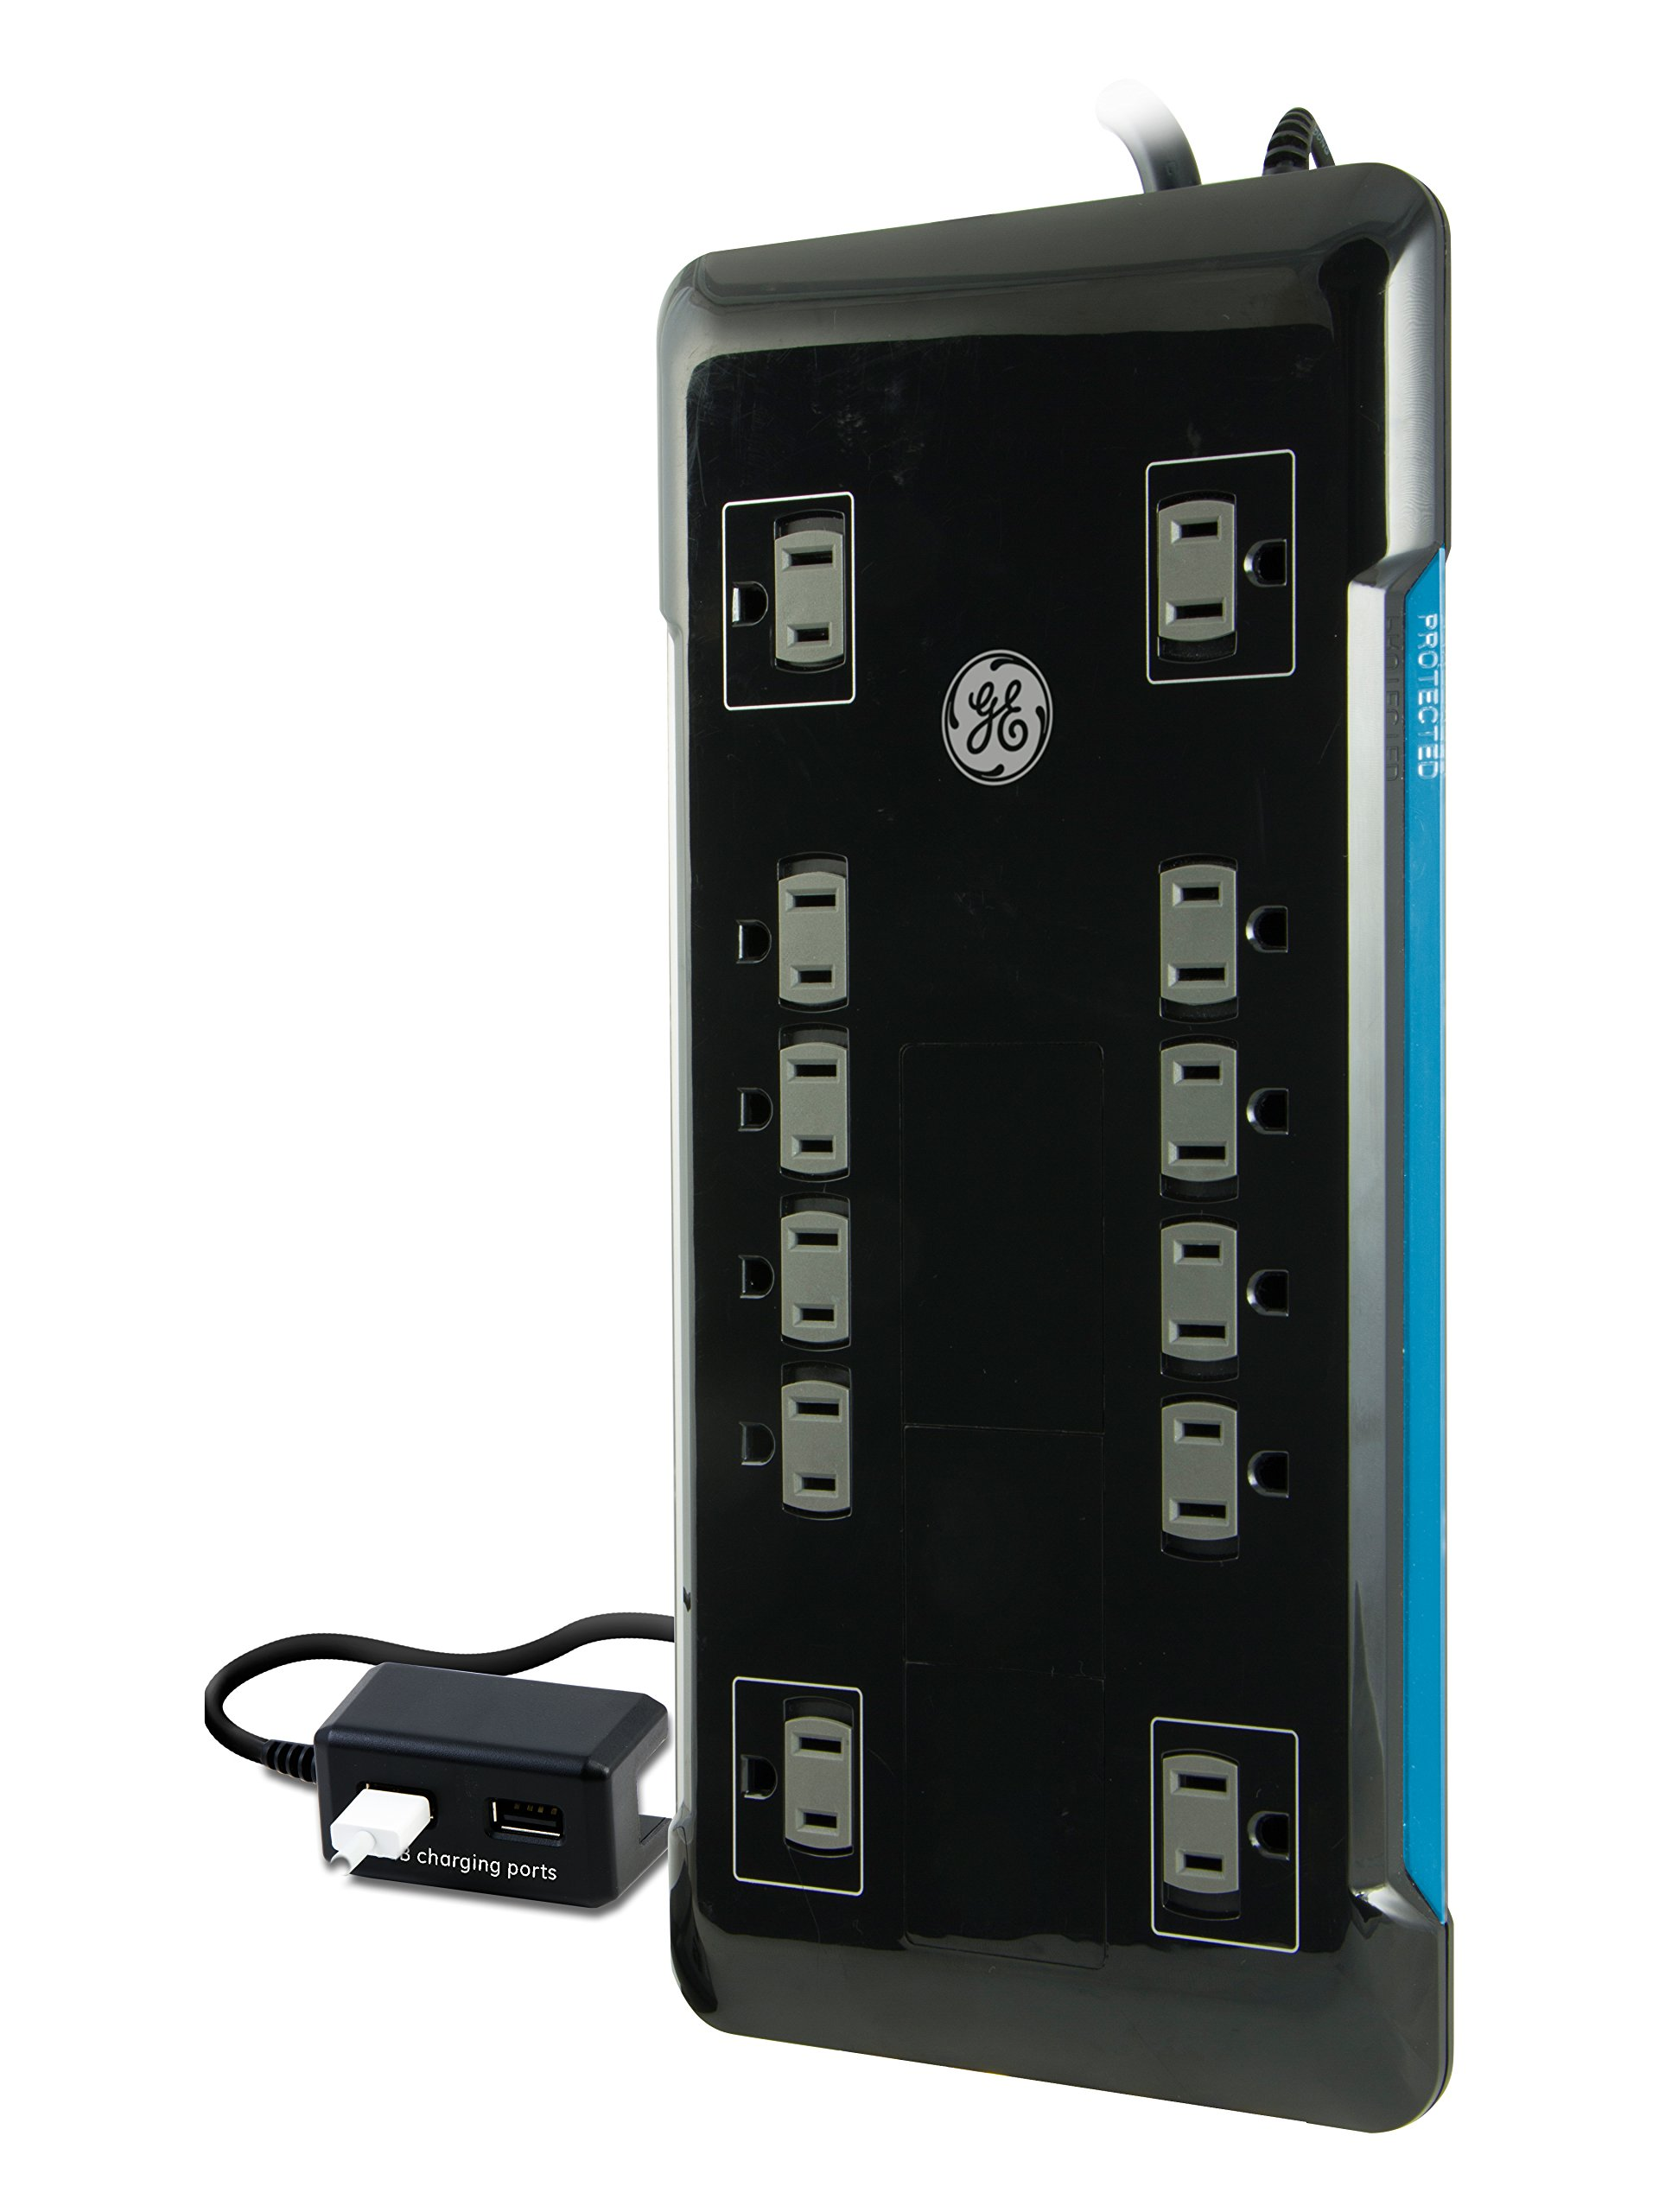 GE Surge Protector, 12 Outlet Power Strip, 2 USB Ports, Extra-Long 8ft Power Cord, Flat Plug, Power Filter, Circuit Breaker, 4320 Joules, Warranty, Black, 11824